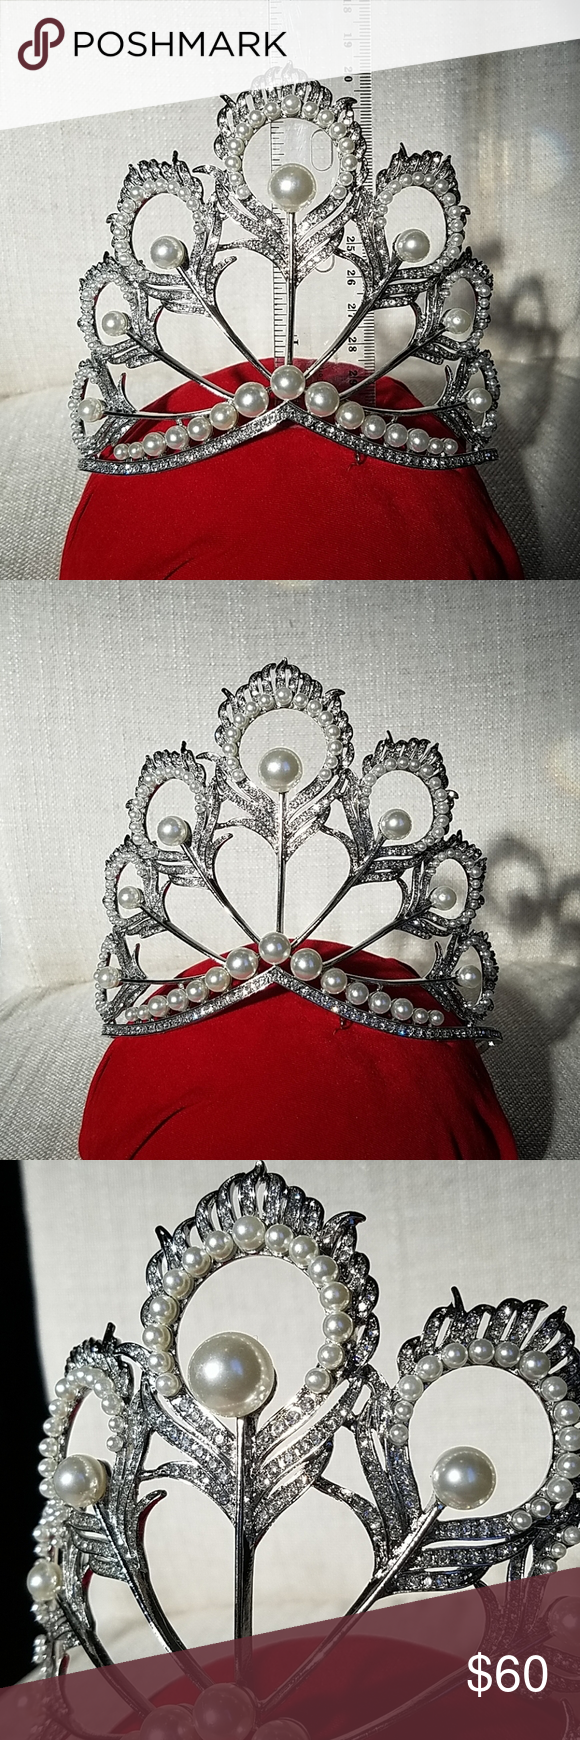 Replica of miss universe crown in 2020 Miss universe